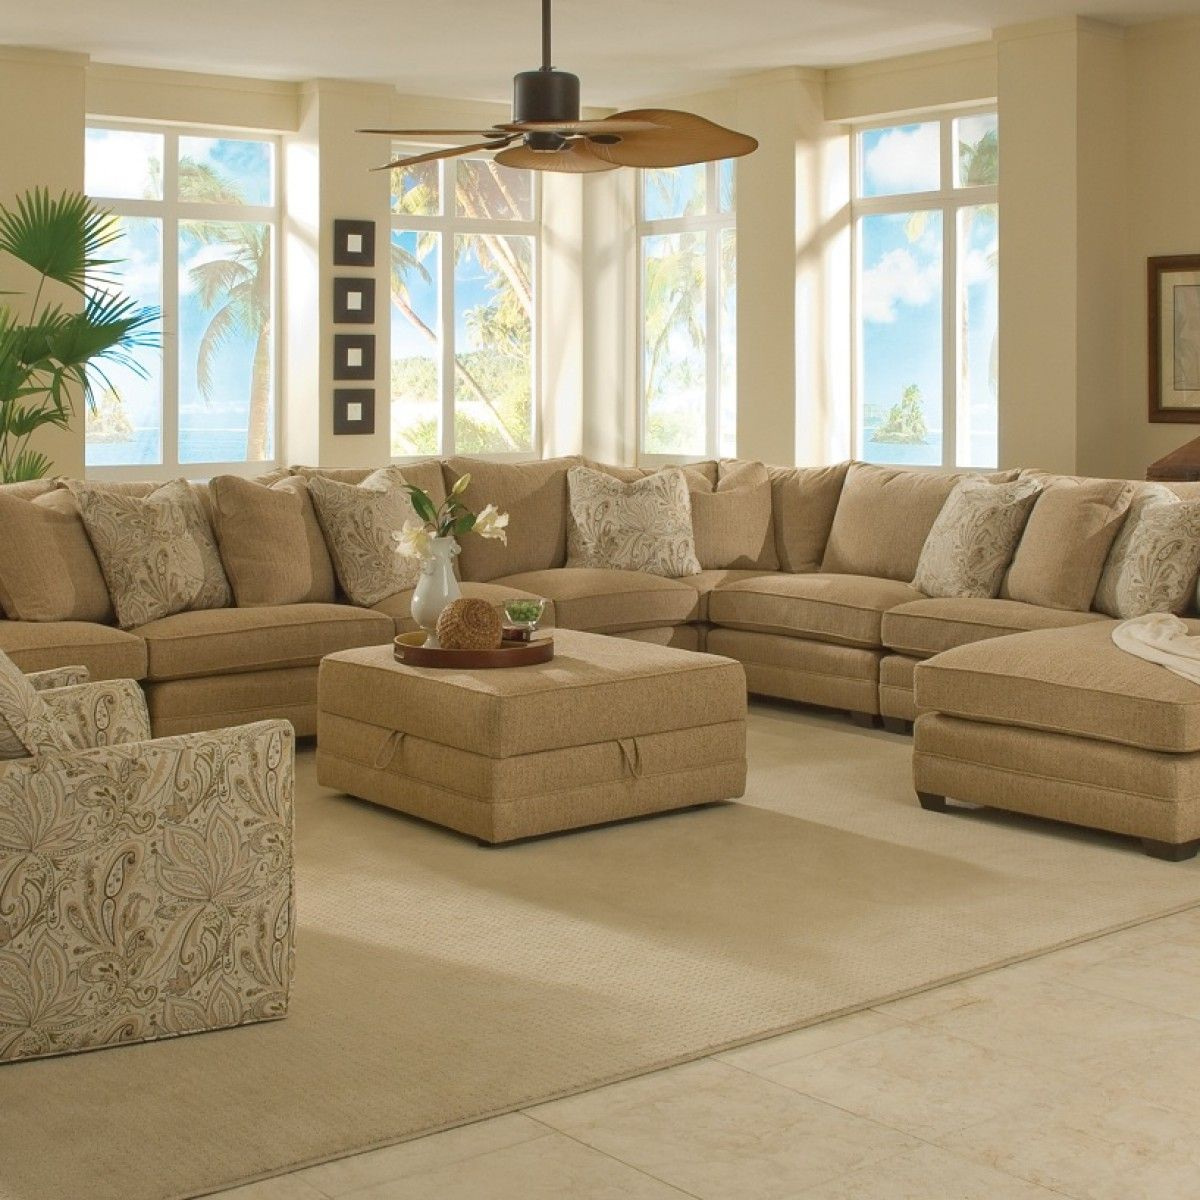 Magnificent large sectional sofas family room for Family room couch ideas